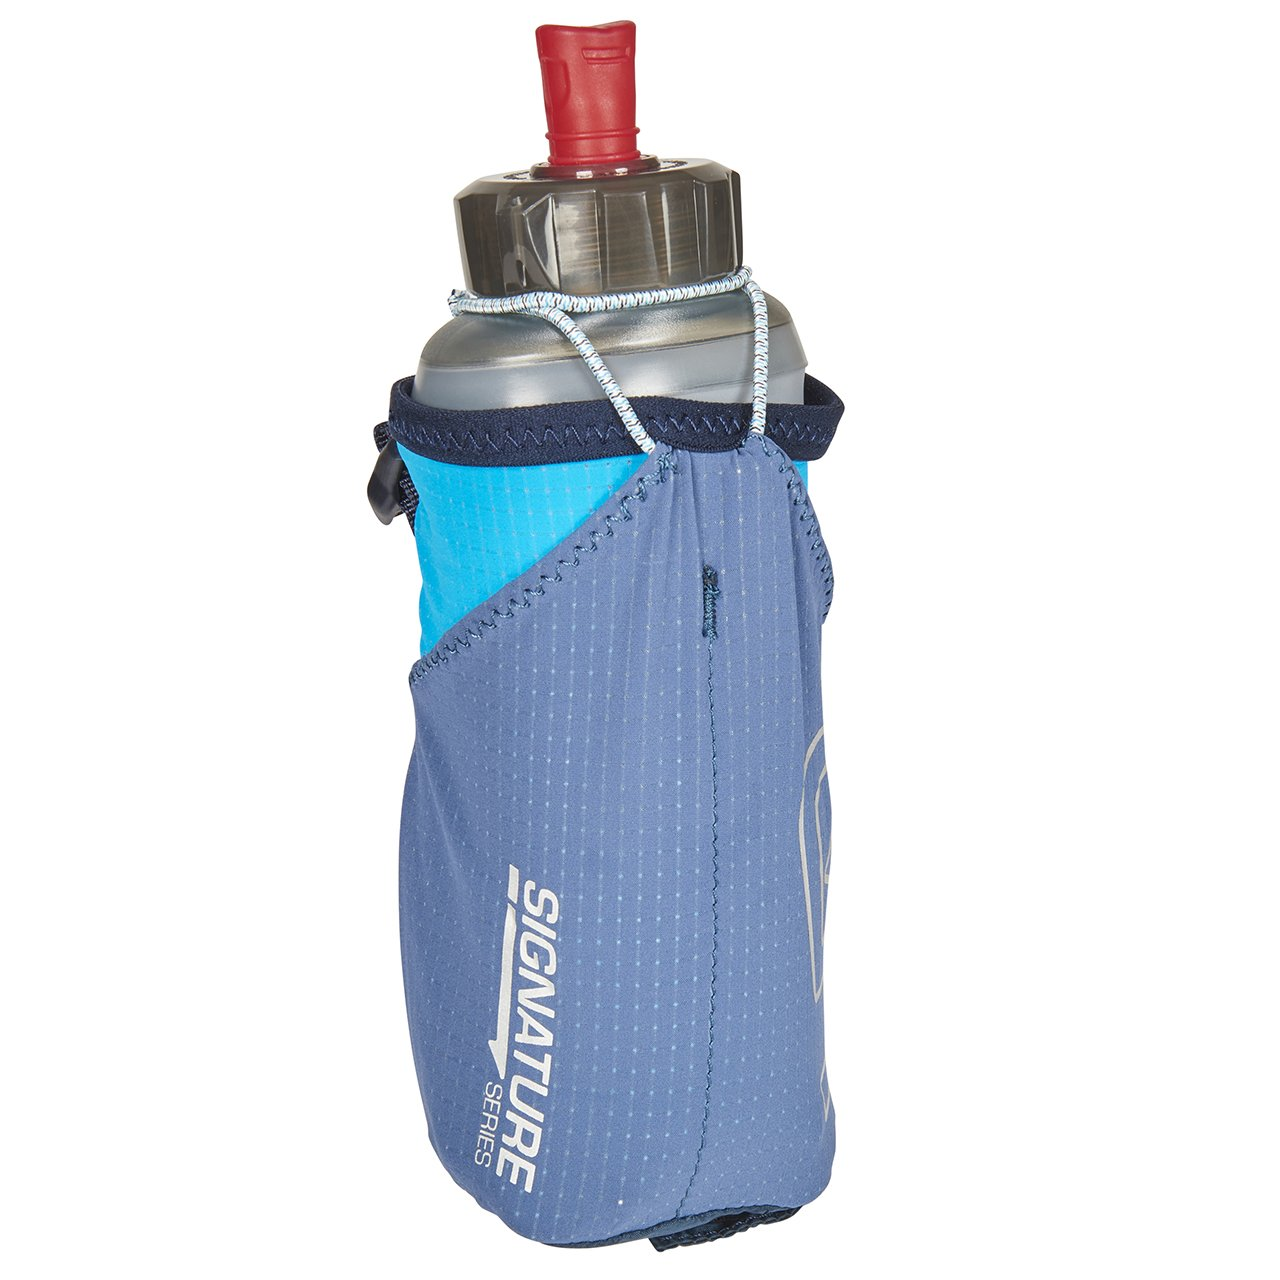 Ultimate Direction EDC (Every Day Clutch) Water Flask Holder, Signature Blue, OneSize